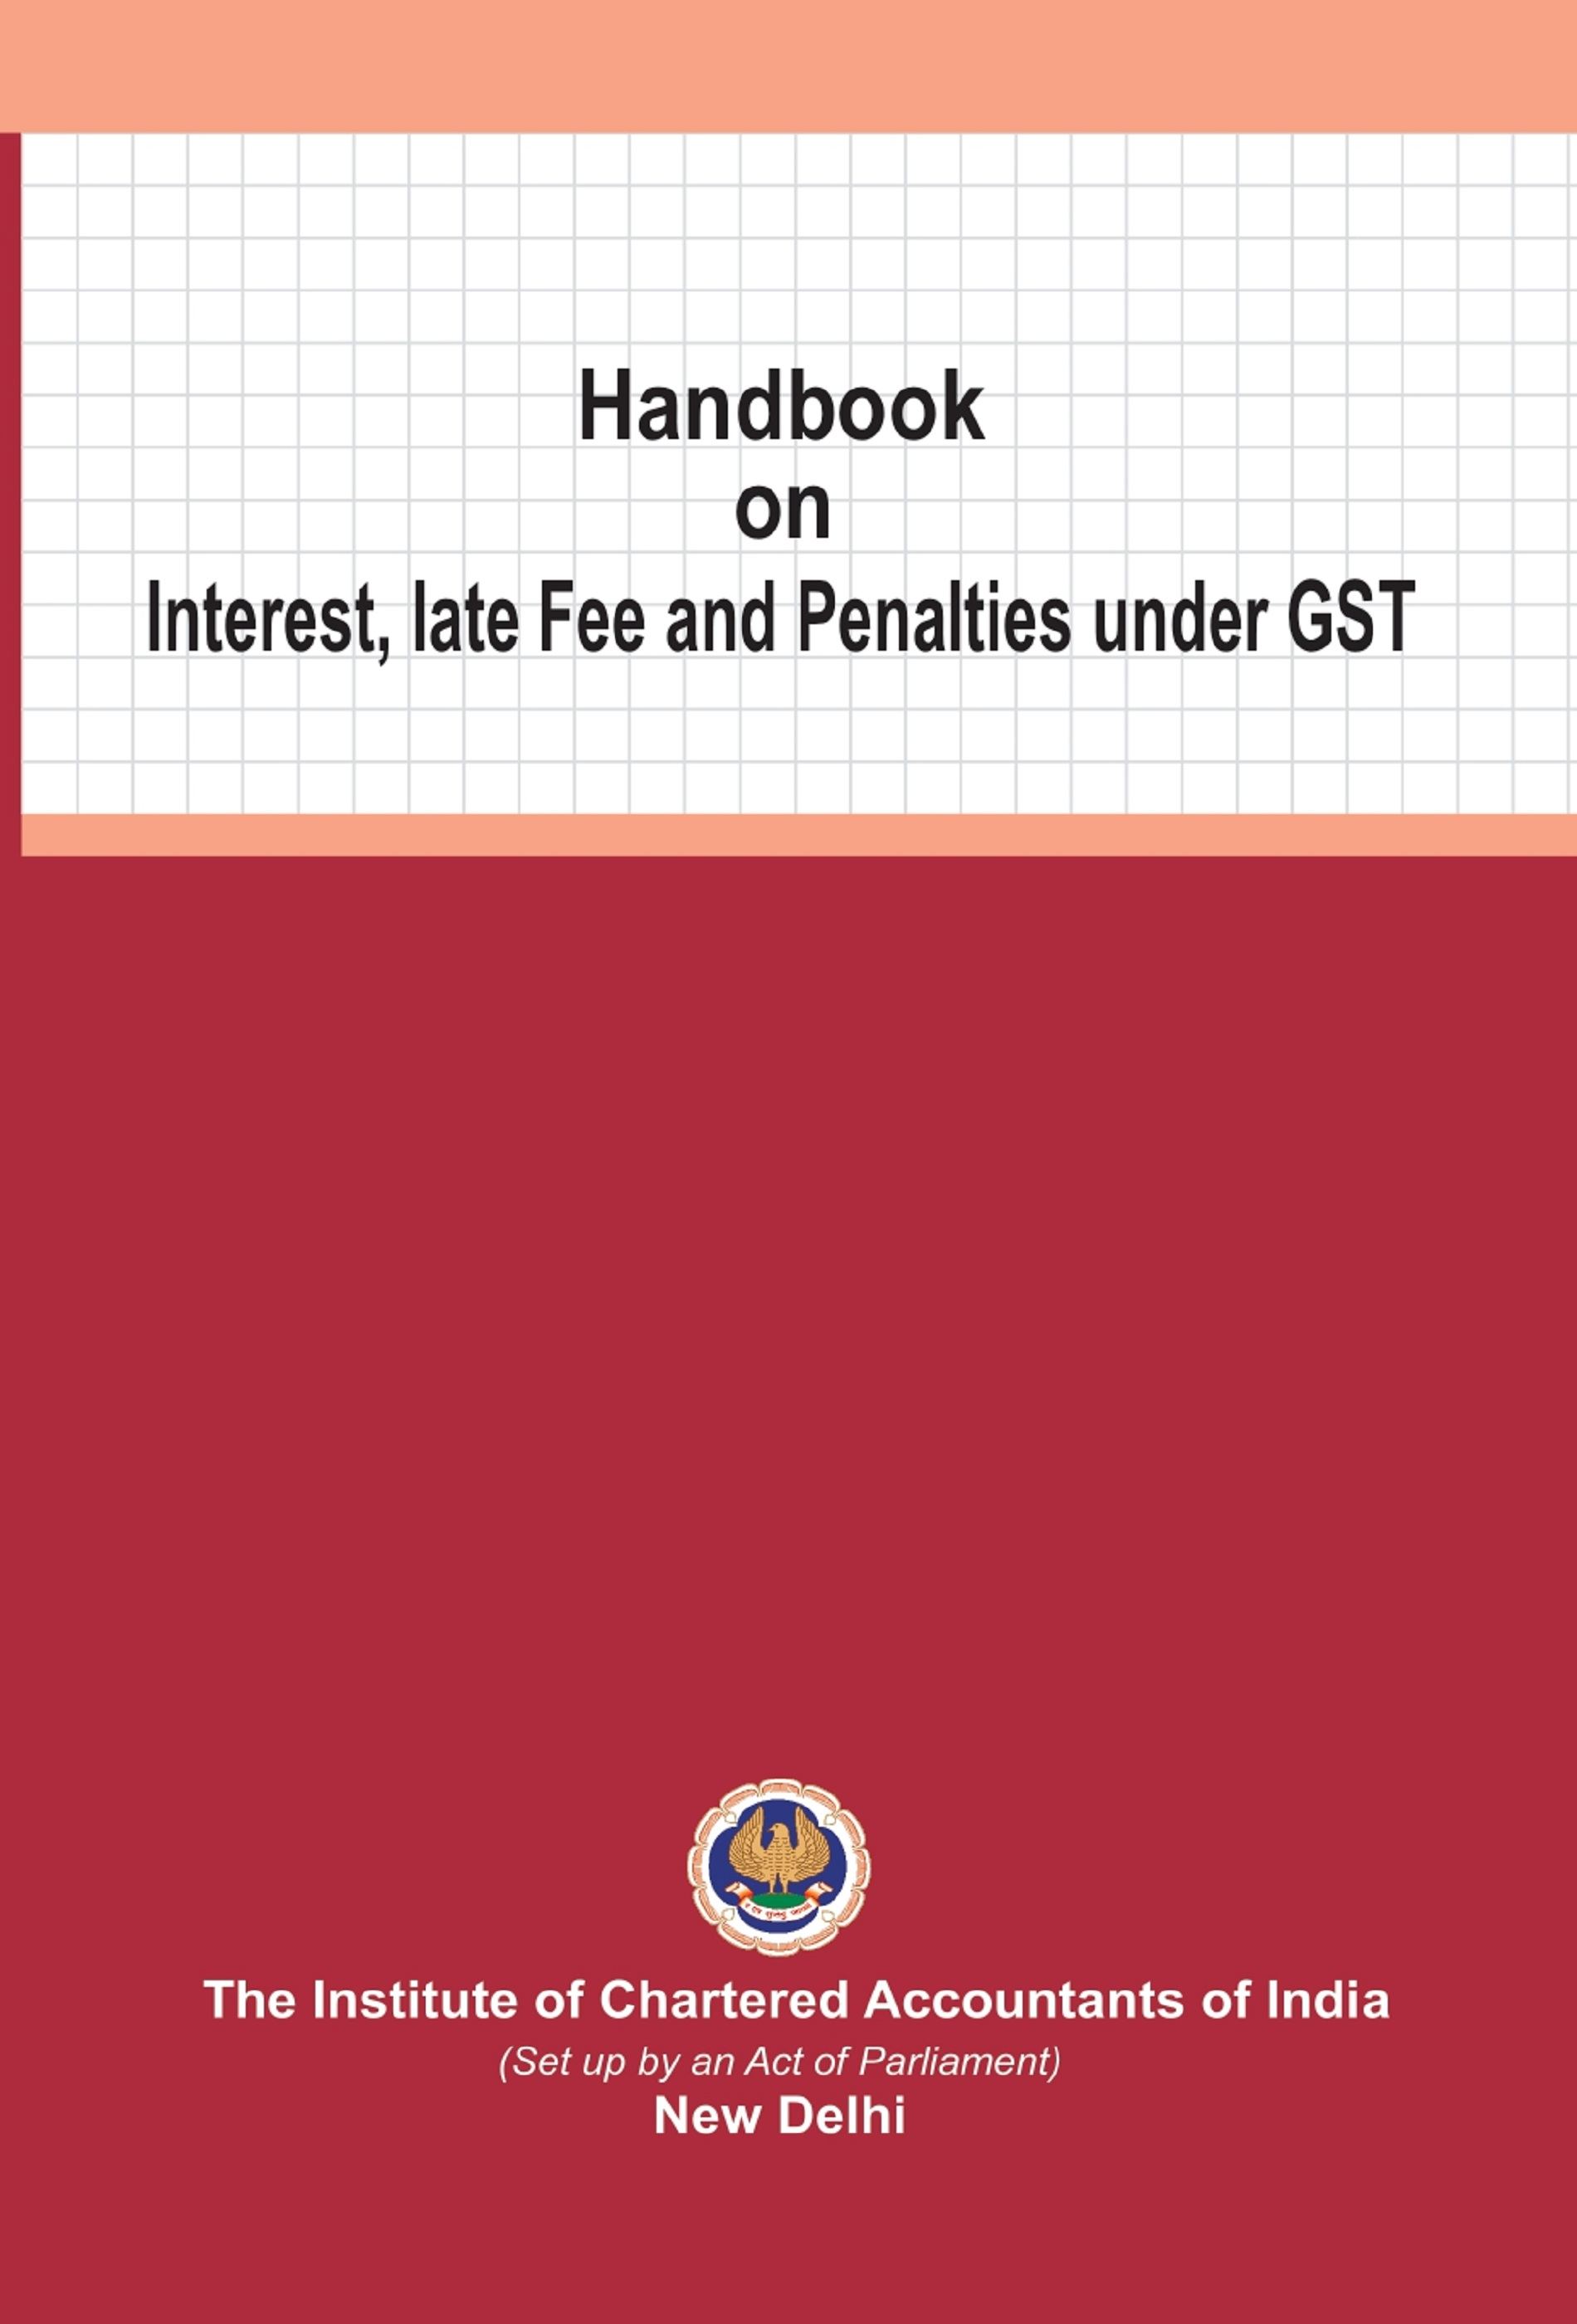 Handbook on Interest, late Fee and Penalties under GST (May, 2020)